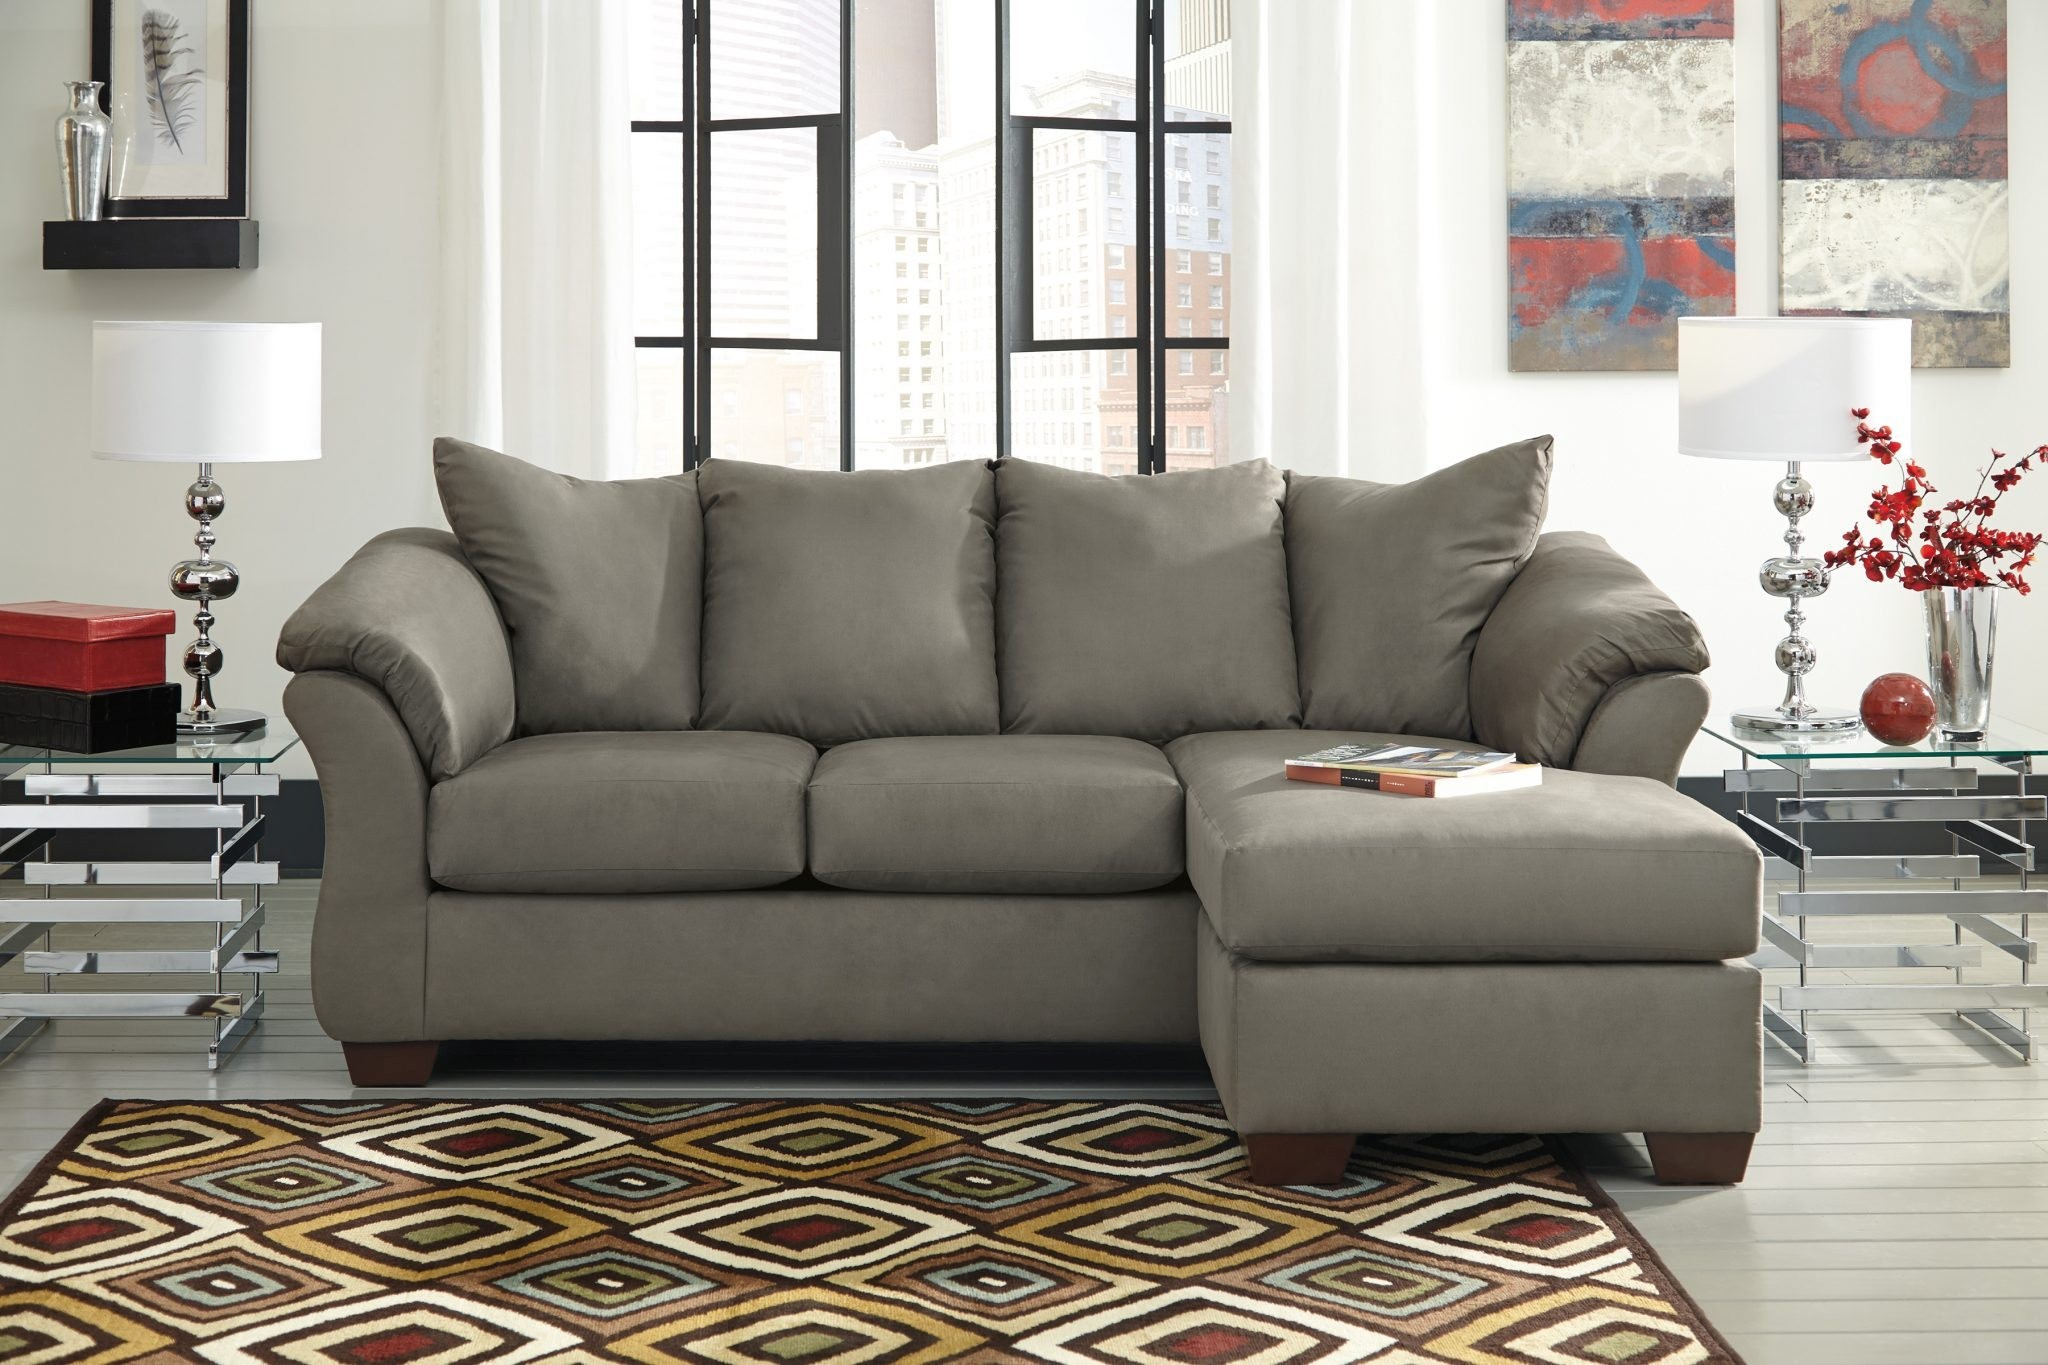 Ashley Furniture sofa Chaise Excellent Best Furniture Mentor Oh Furniture Store ashley Furniture Gallery